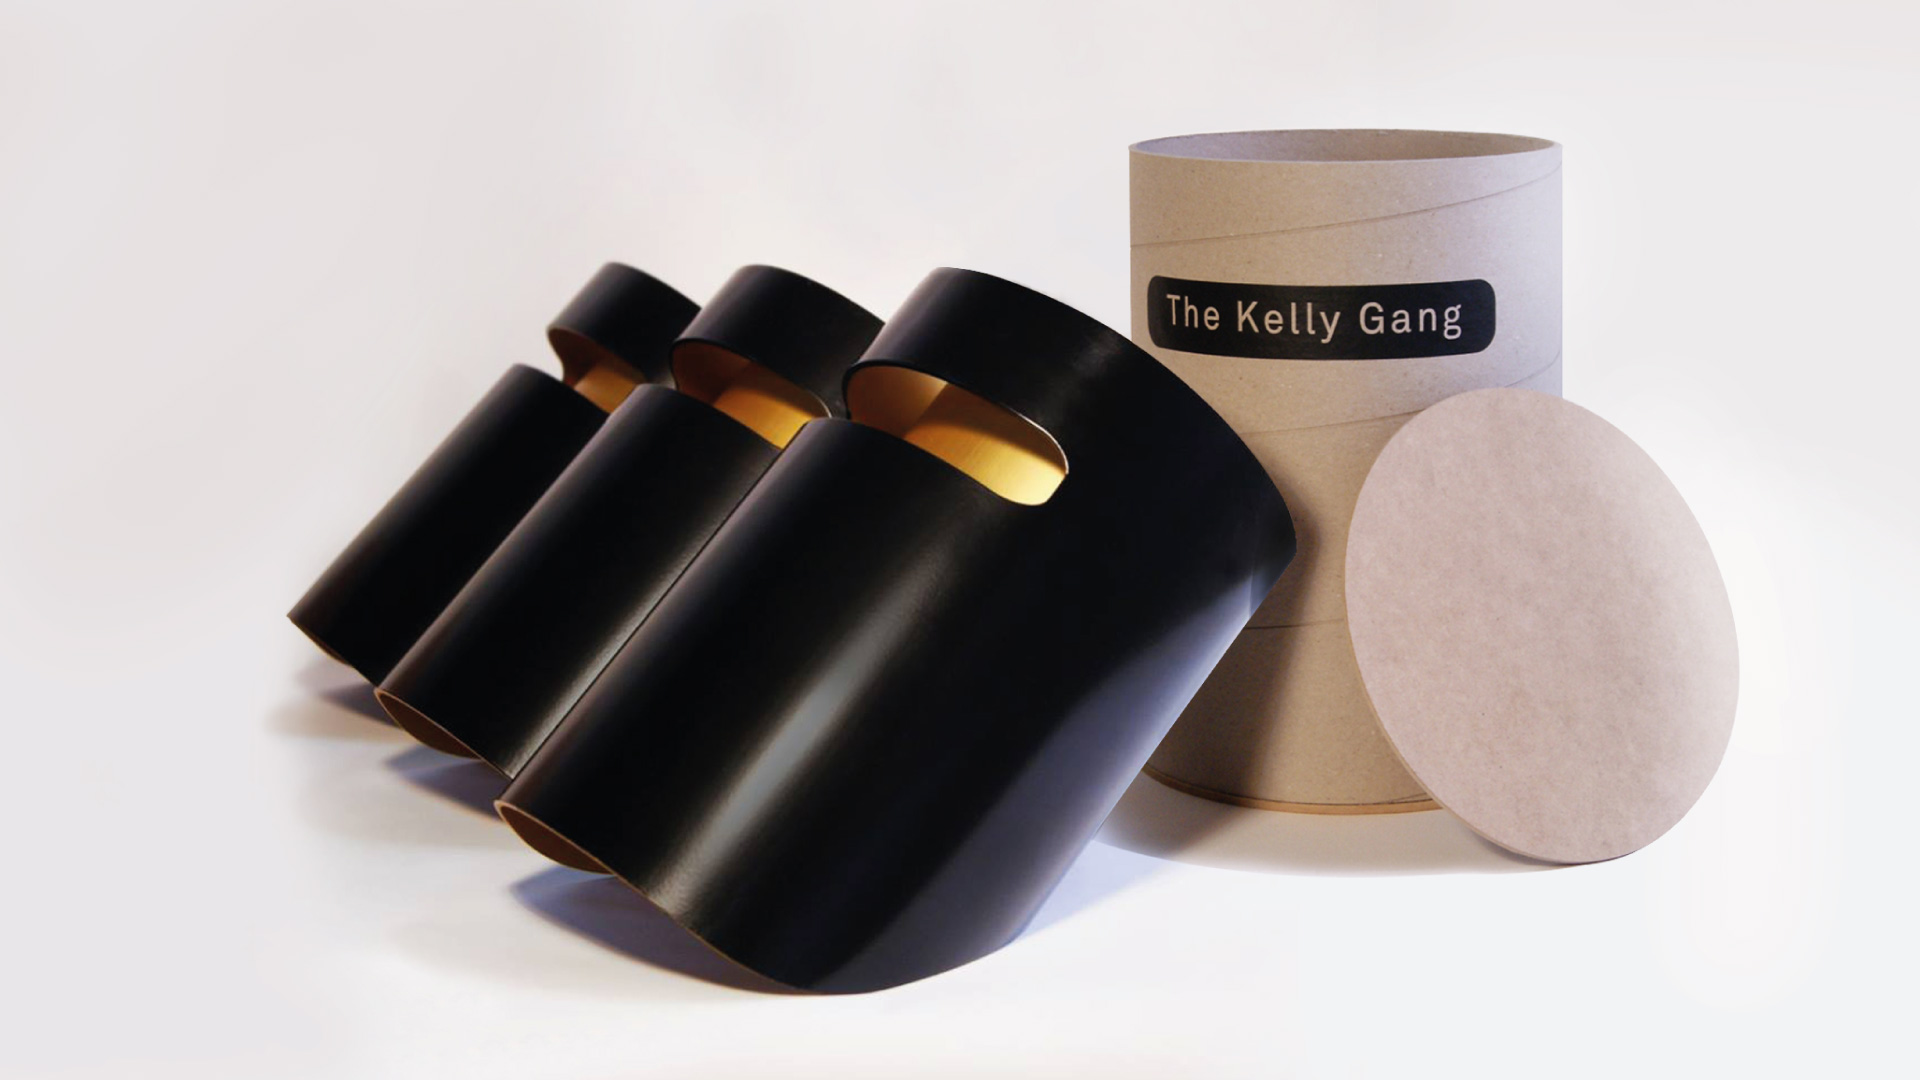 Kelly Gang pendant lights with custom packaging